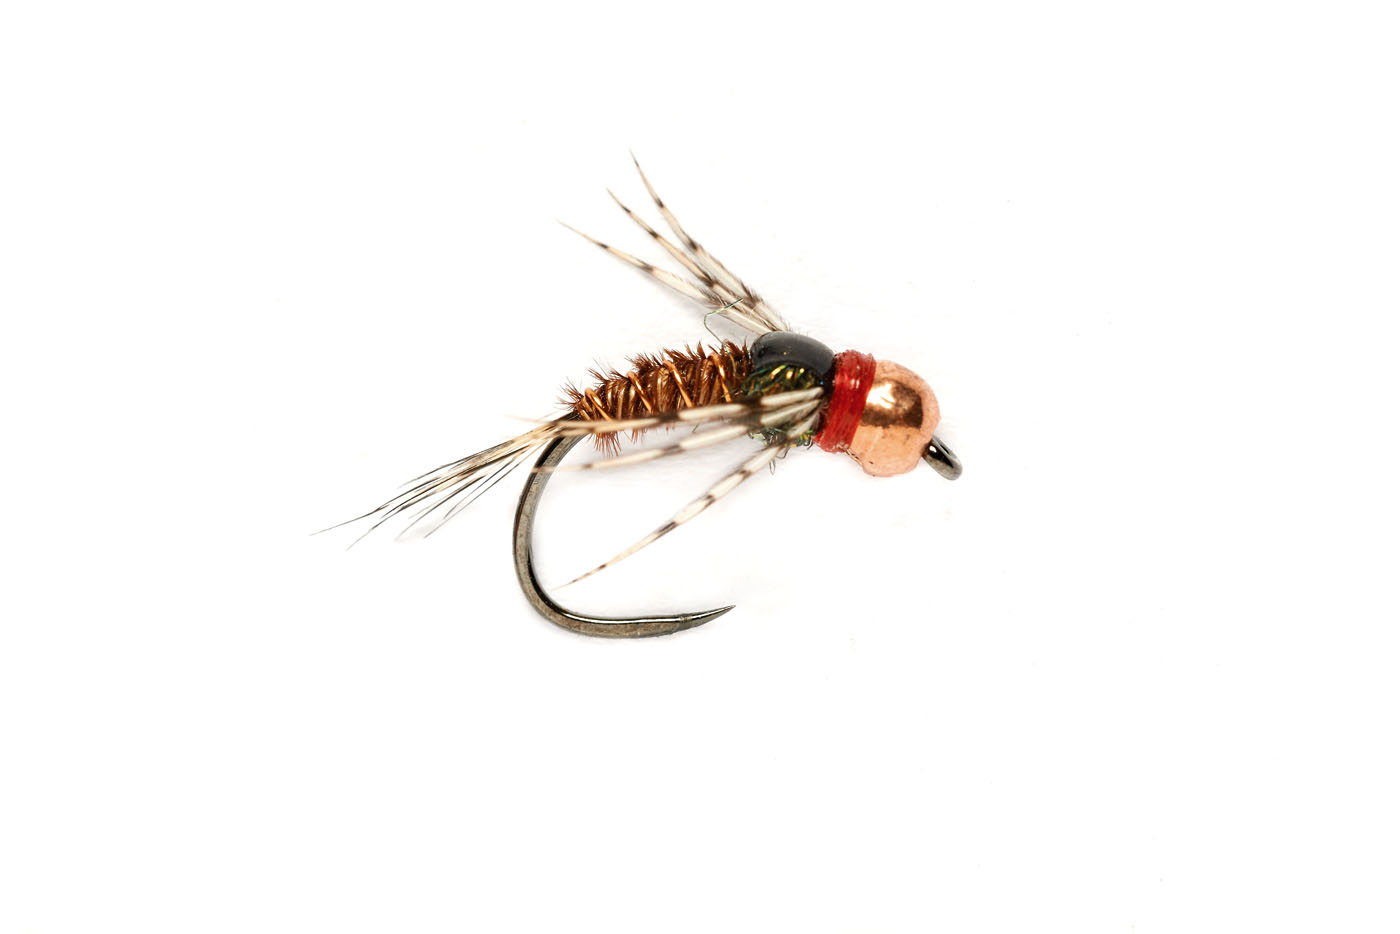 Pheasant Tail Red Collar Leggy (TBH) Barbless